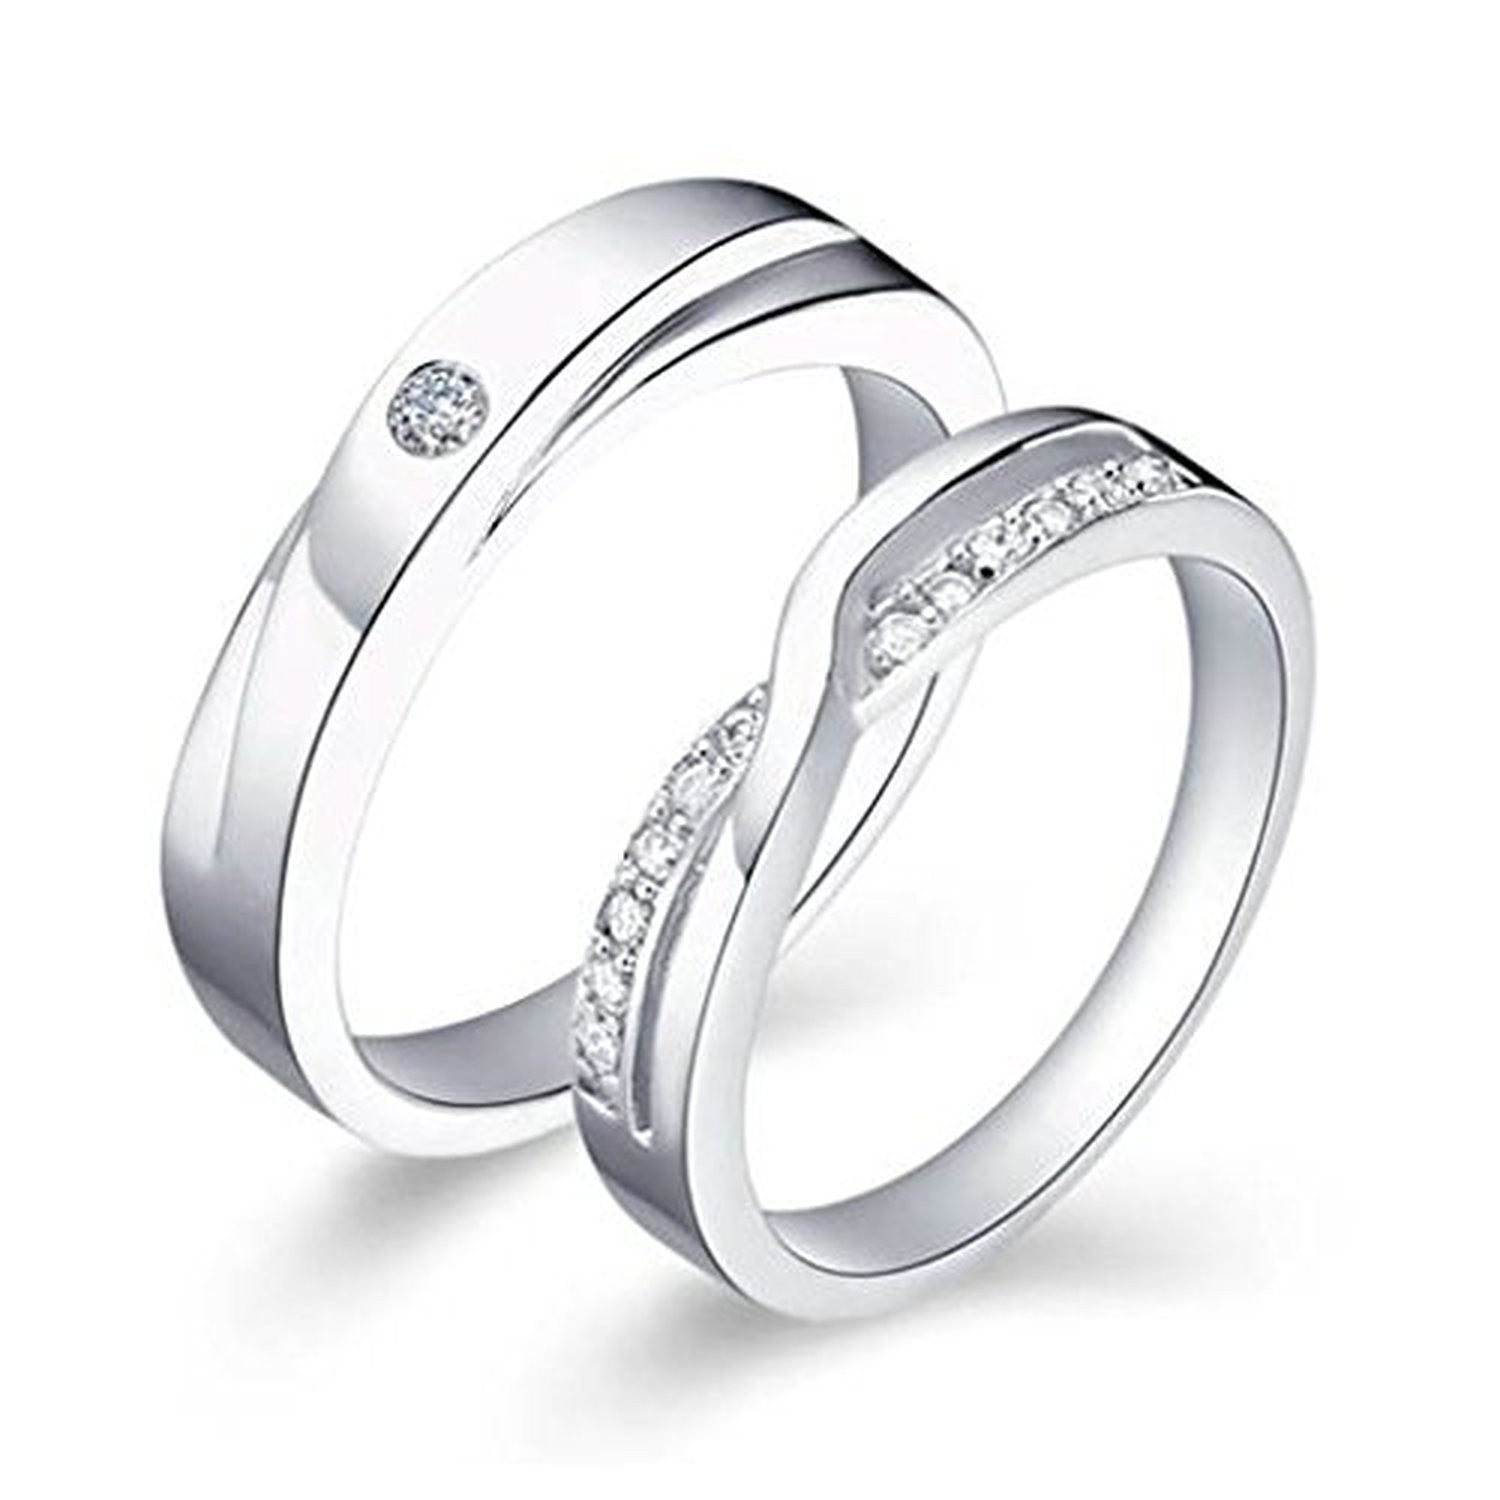 rings ring dazzling white interchangeable set evermarker sapphire products created wedding sterling silver